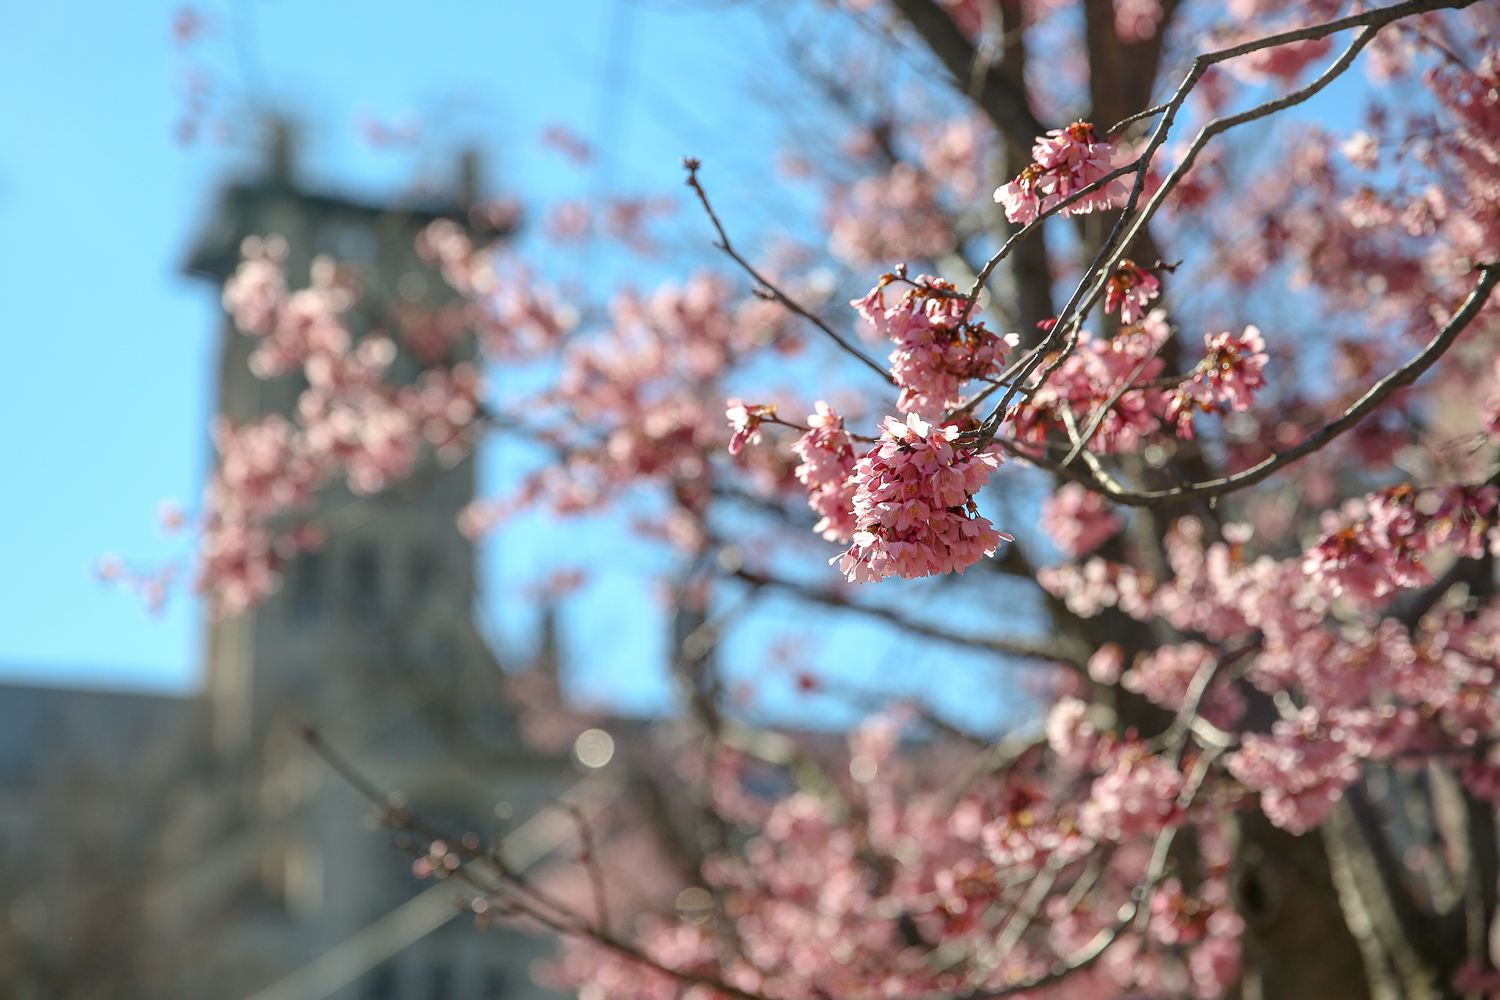 National Cathedral has the beginnings of cherry blossoms, but northwest is filled with budding trees.  (Amanda Andrade-Rhoades/DC Refined)